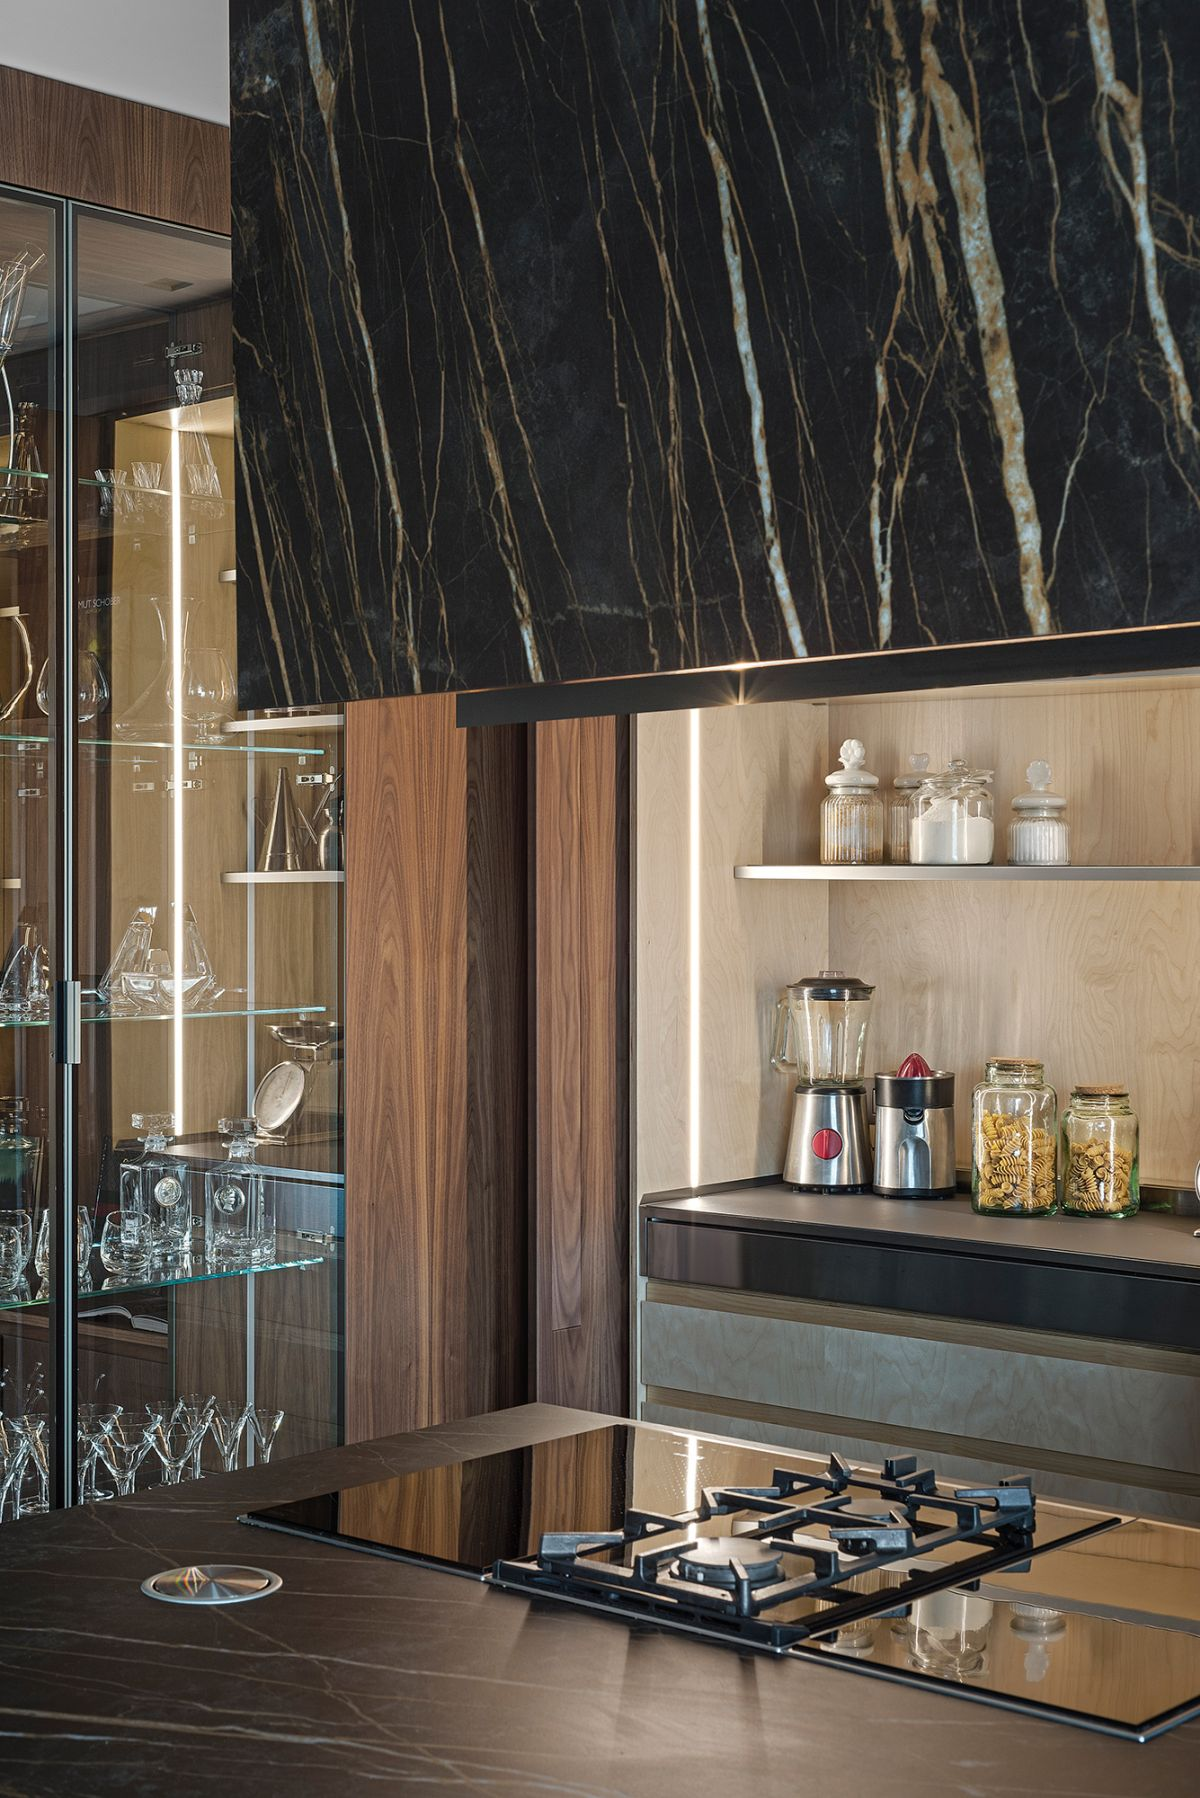 1570698860 162 exquisite kitchens designed by italian brands reveal their recipes for success - Exquisite Kitchens Designed by Italian Brands Reveal Their Recipes For success